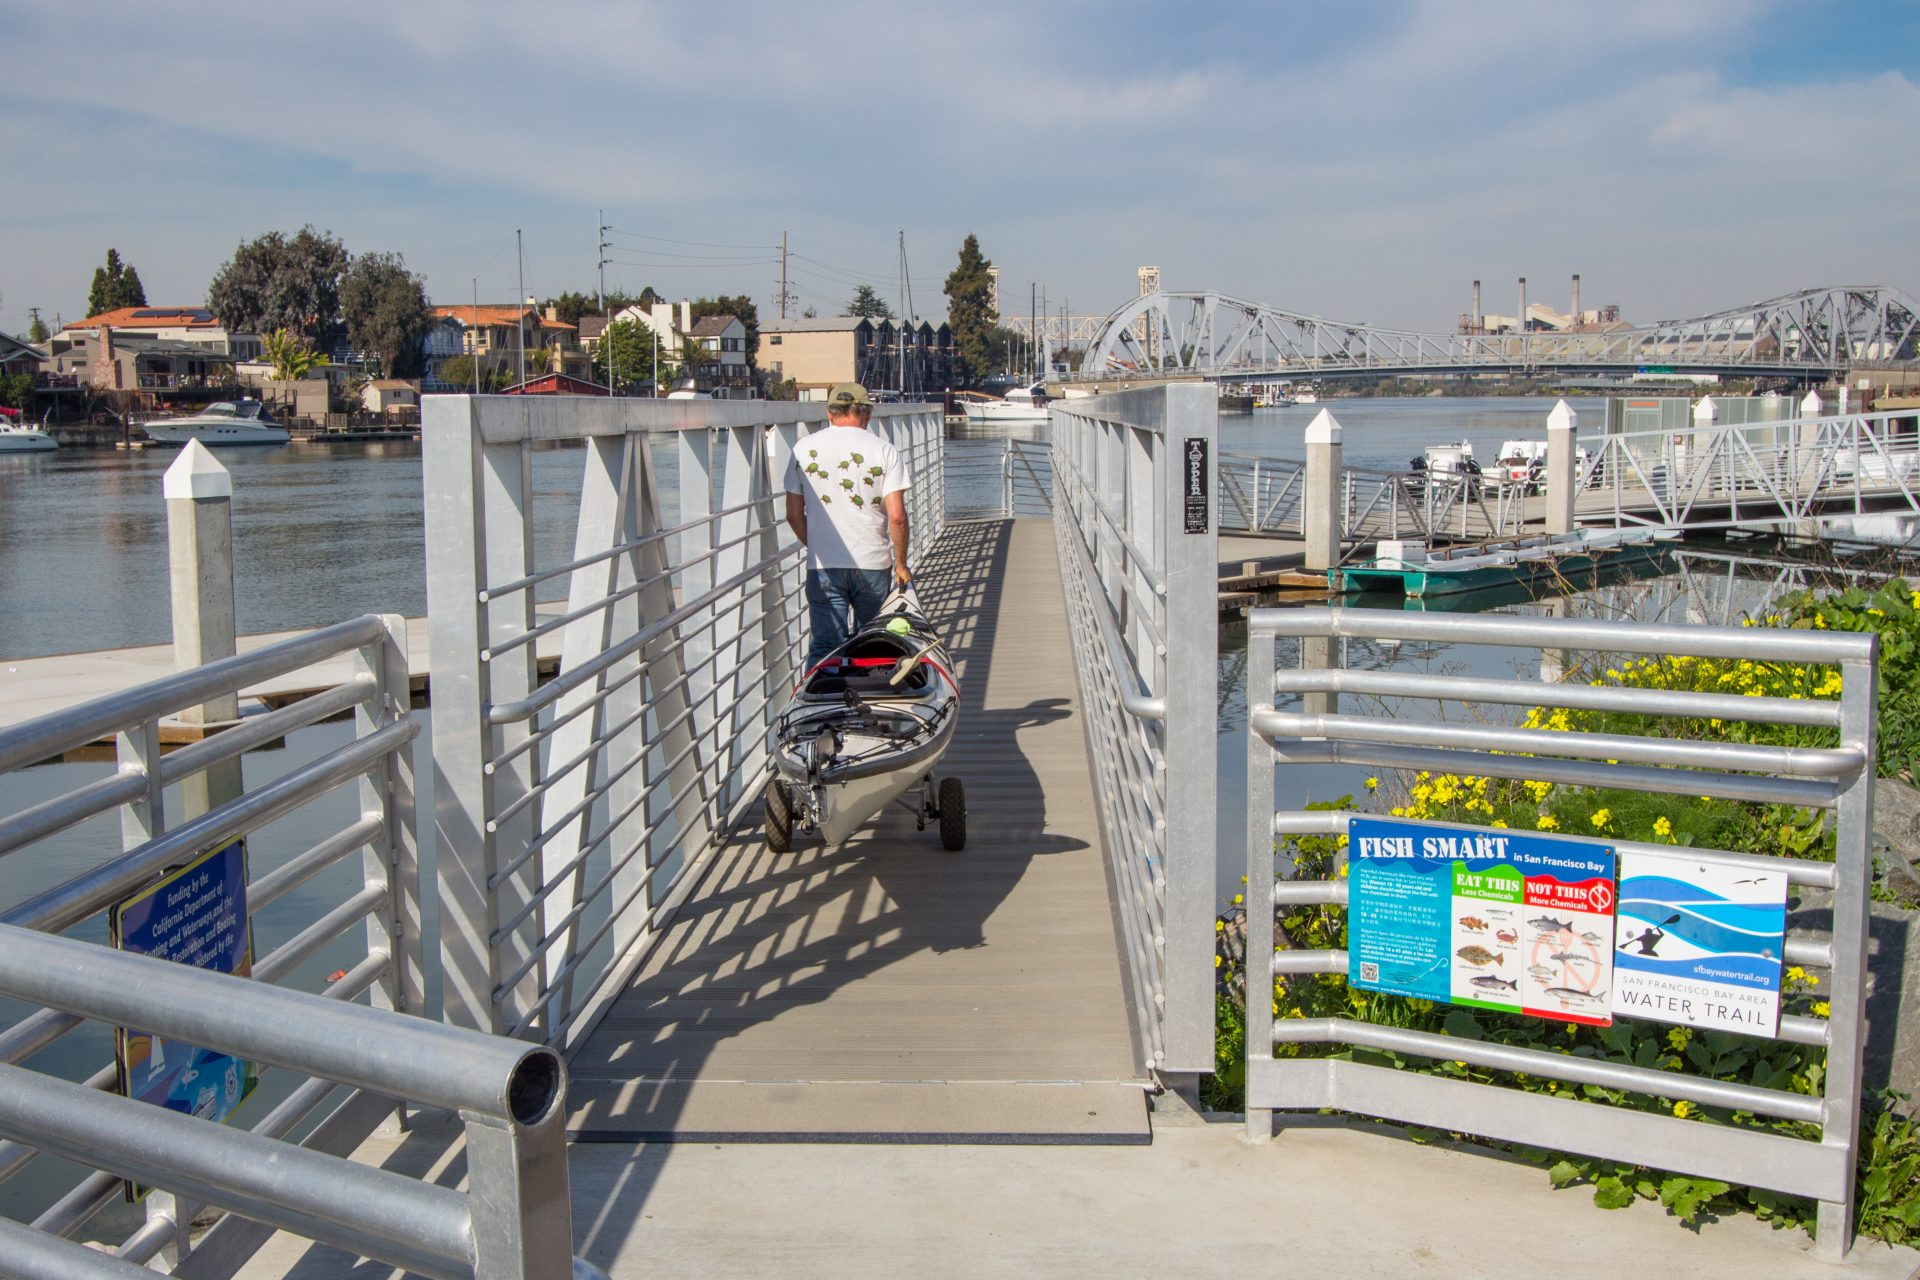 Person pulling kayak on rolling cart down ramp to dock